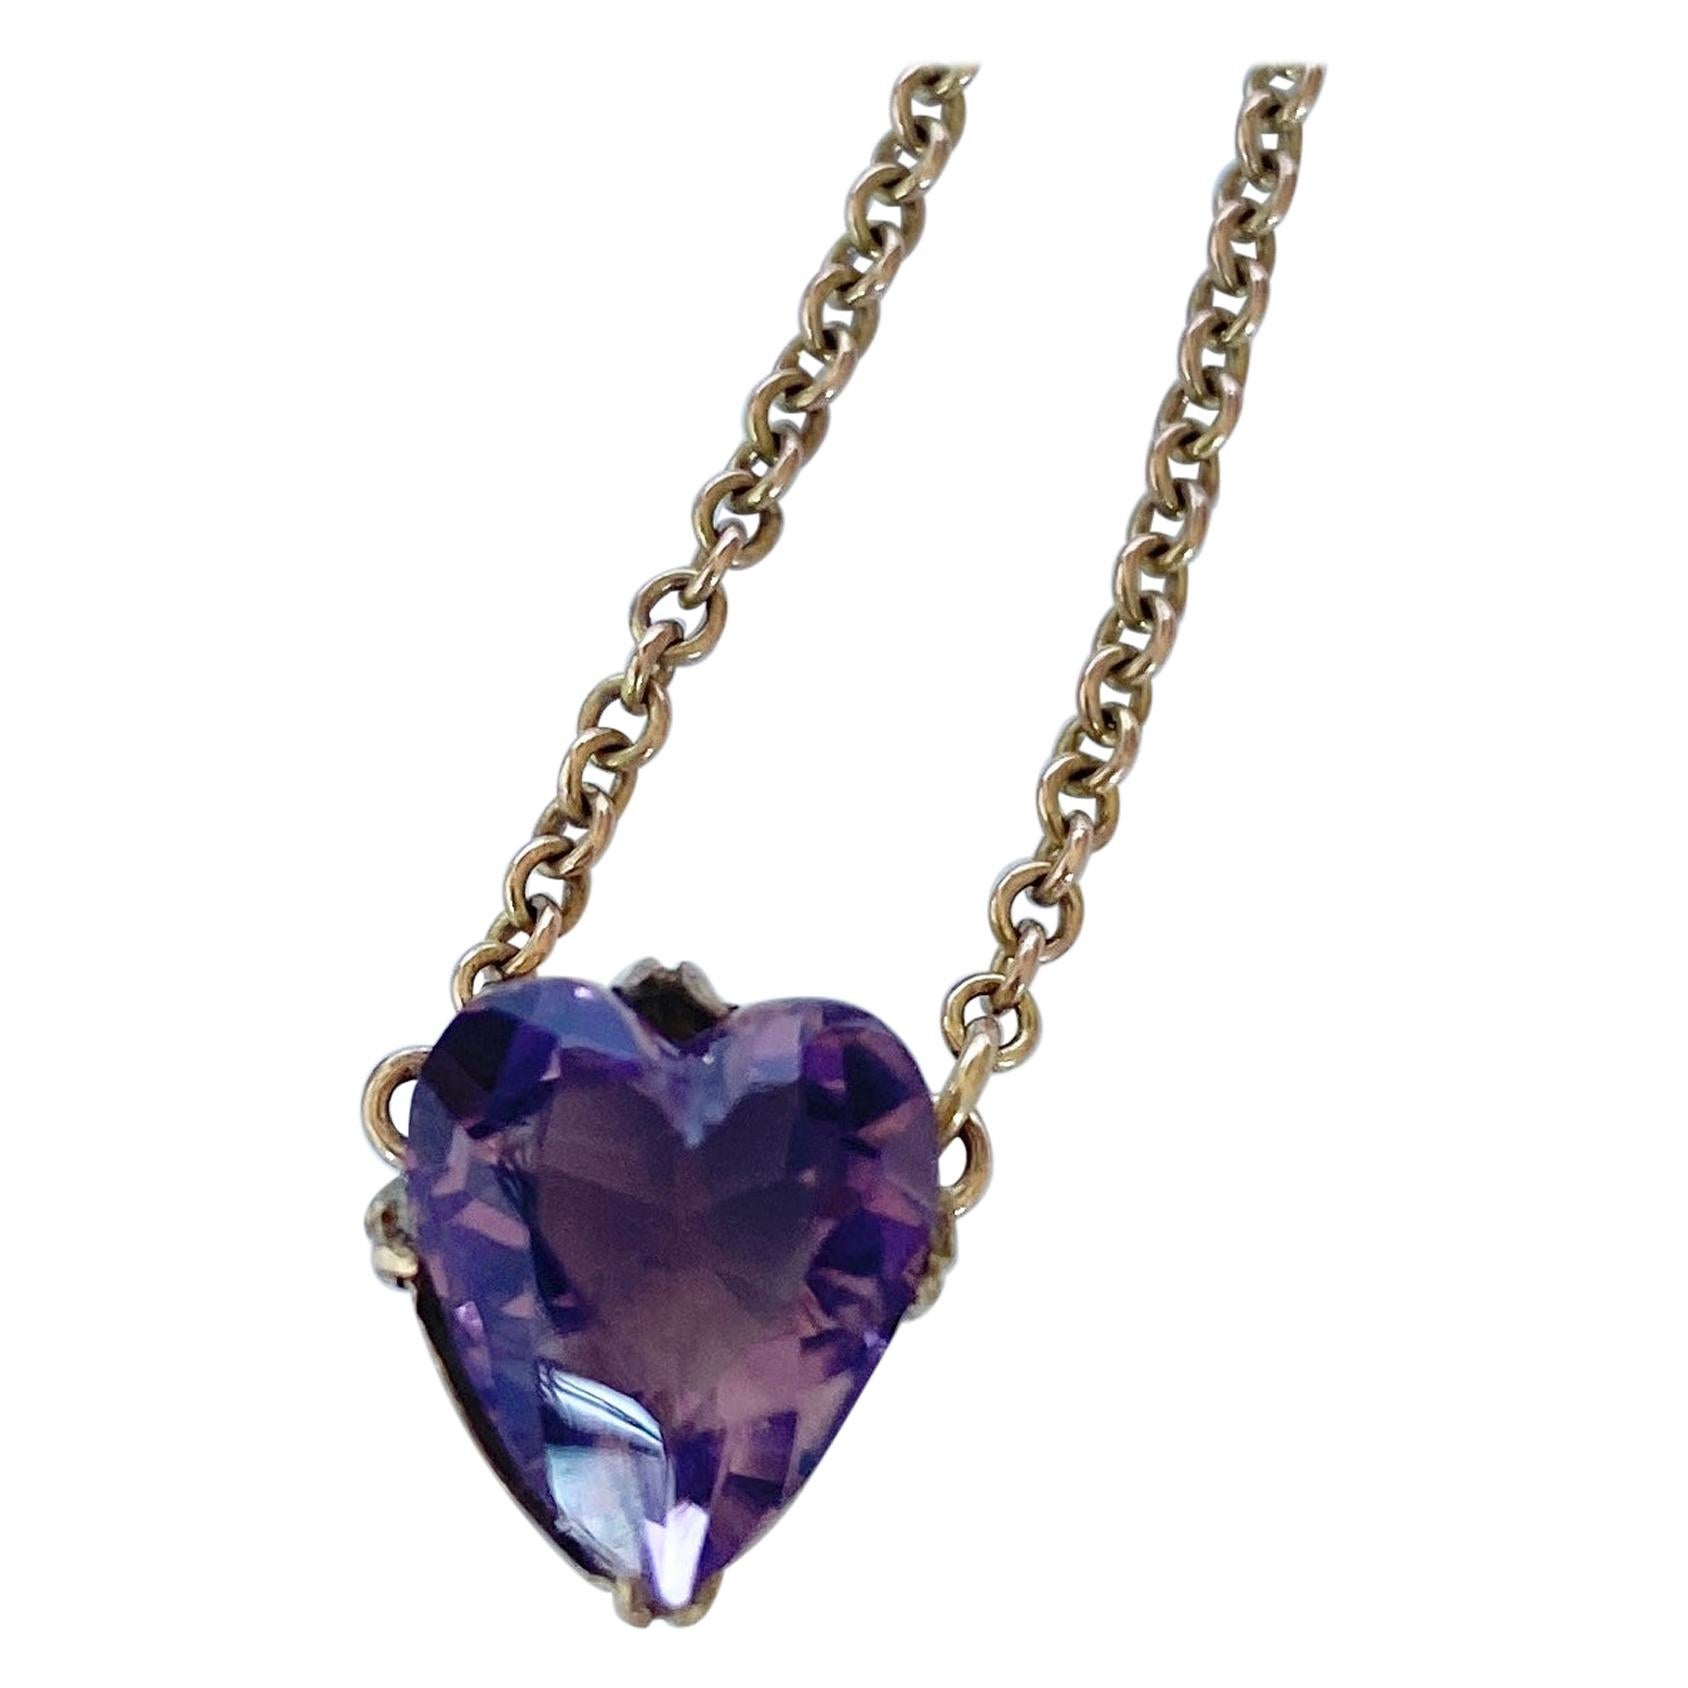 Vintage Amethyst and 9 Carat Gold Heart Pendant Necklace